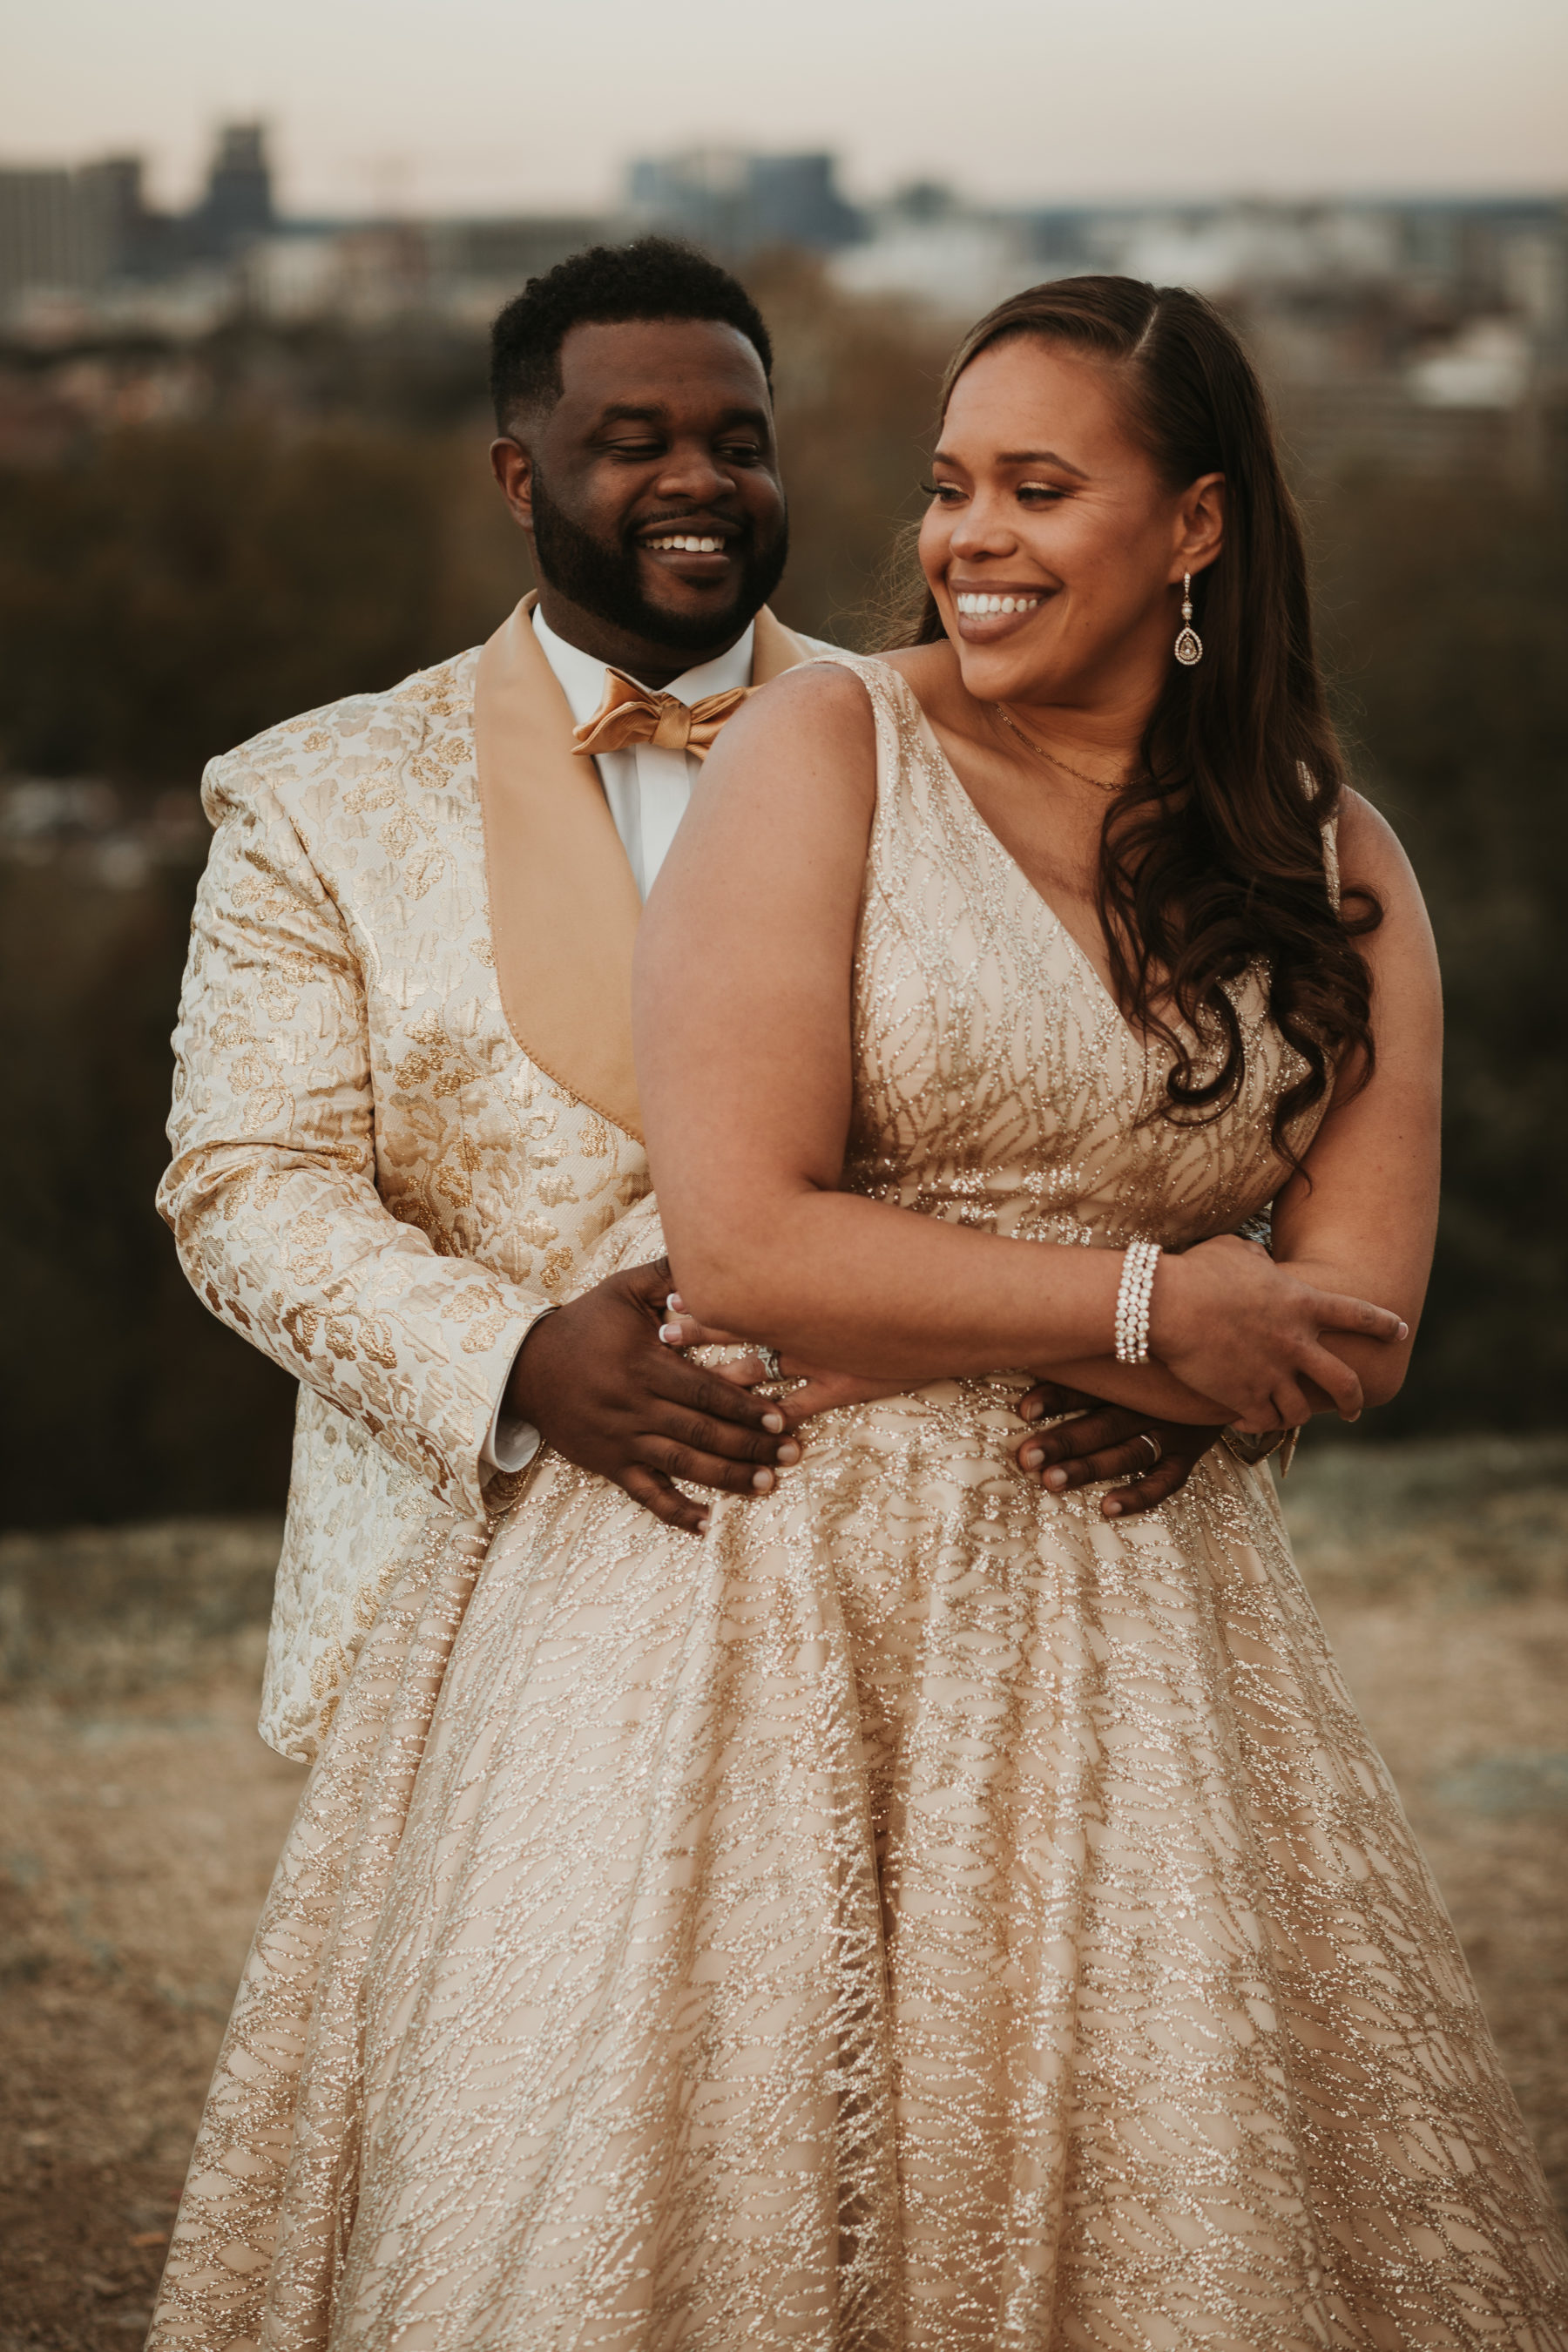 Gold wedding attire: Luxurious Stone Rivers Country Club Wedding featured on Nashville Bride Guide